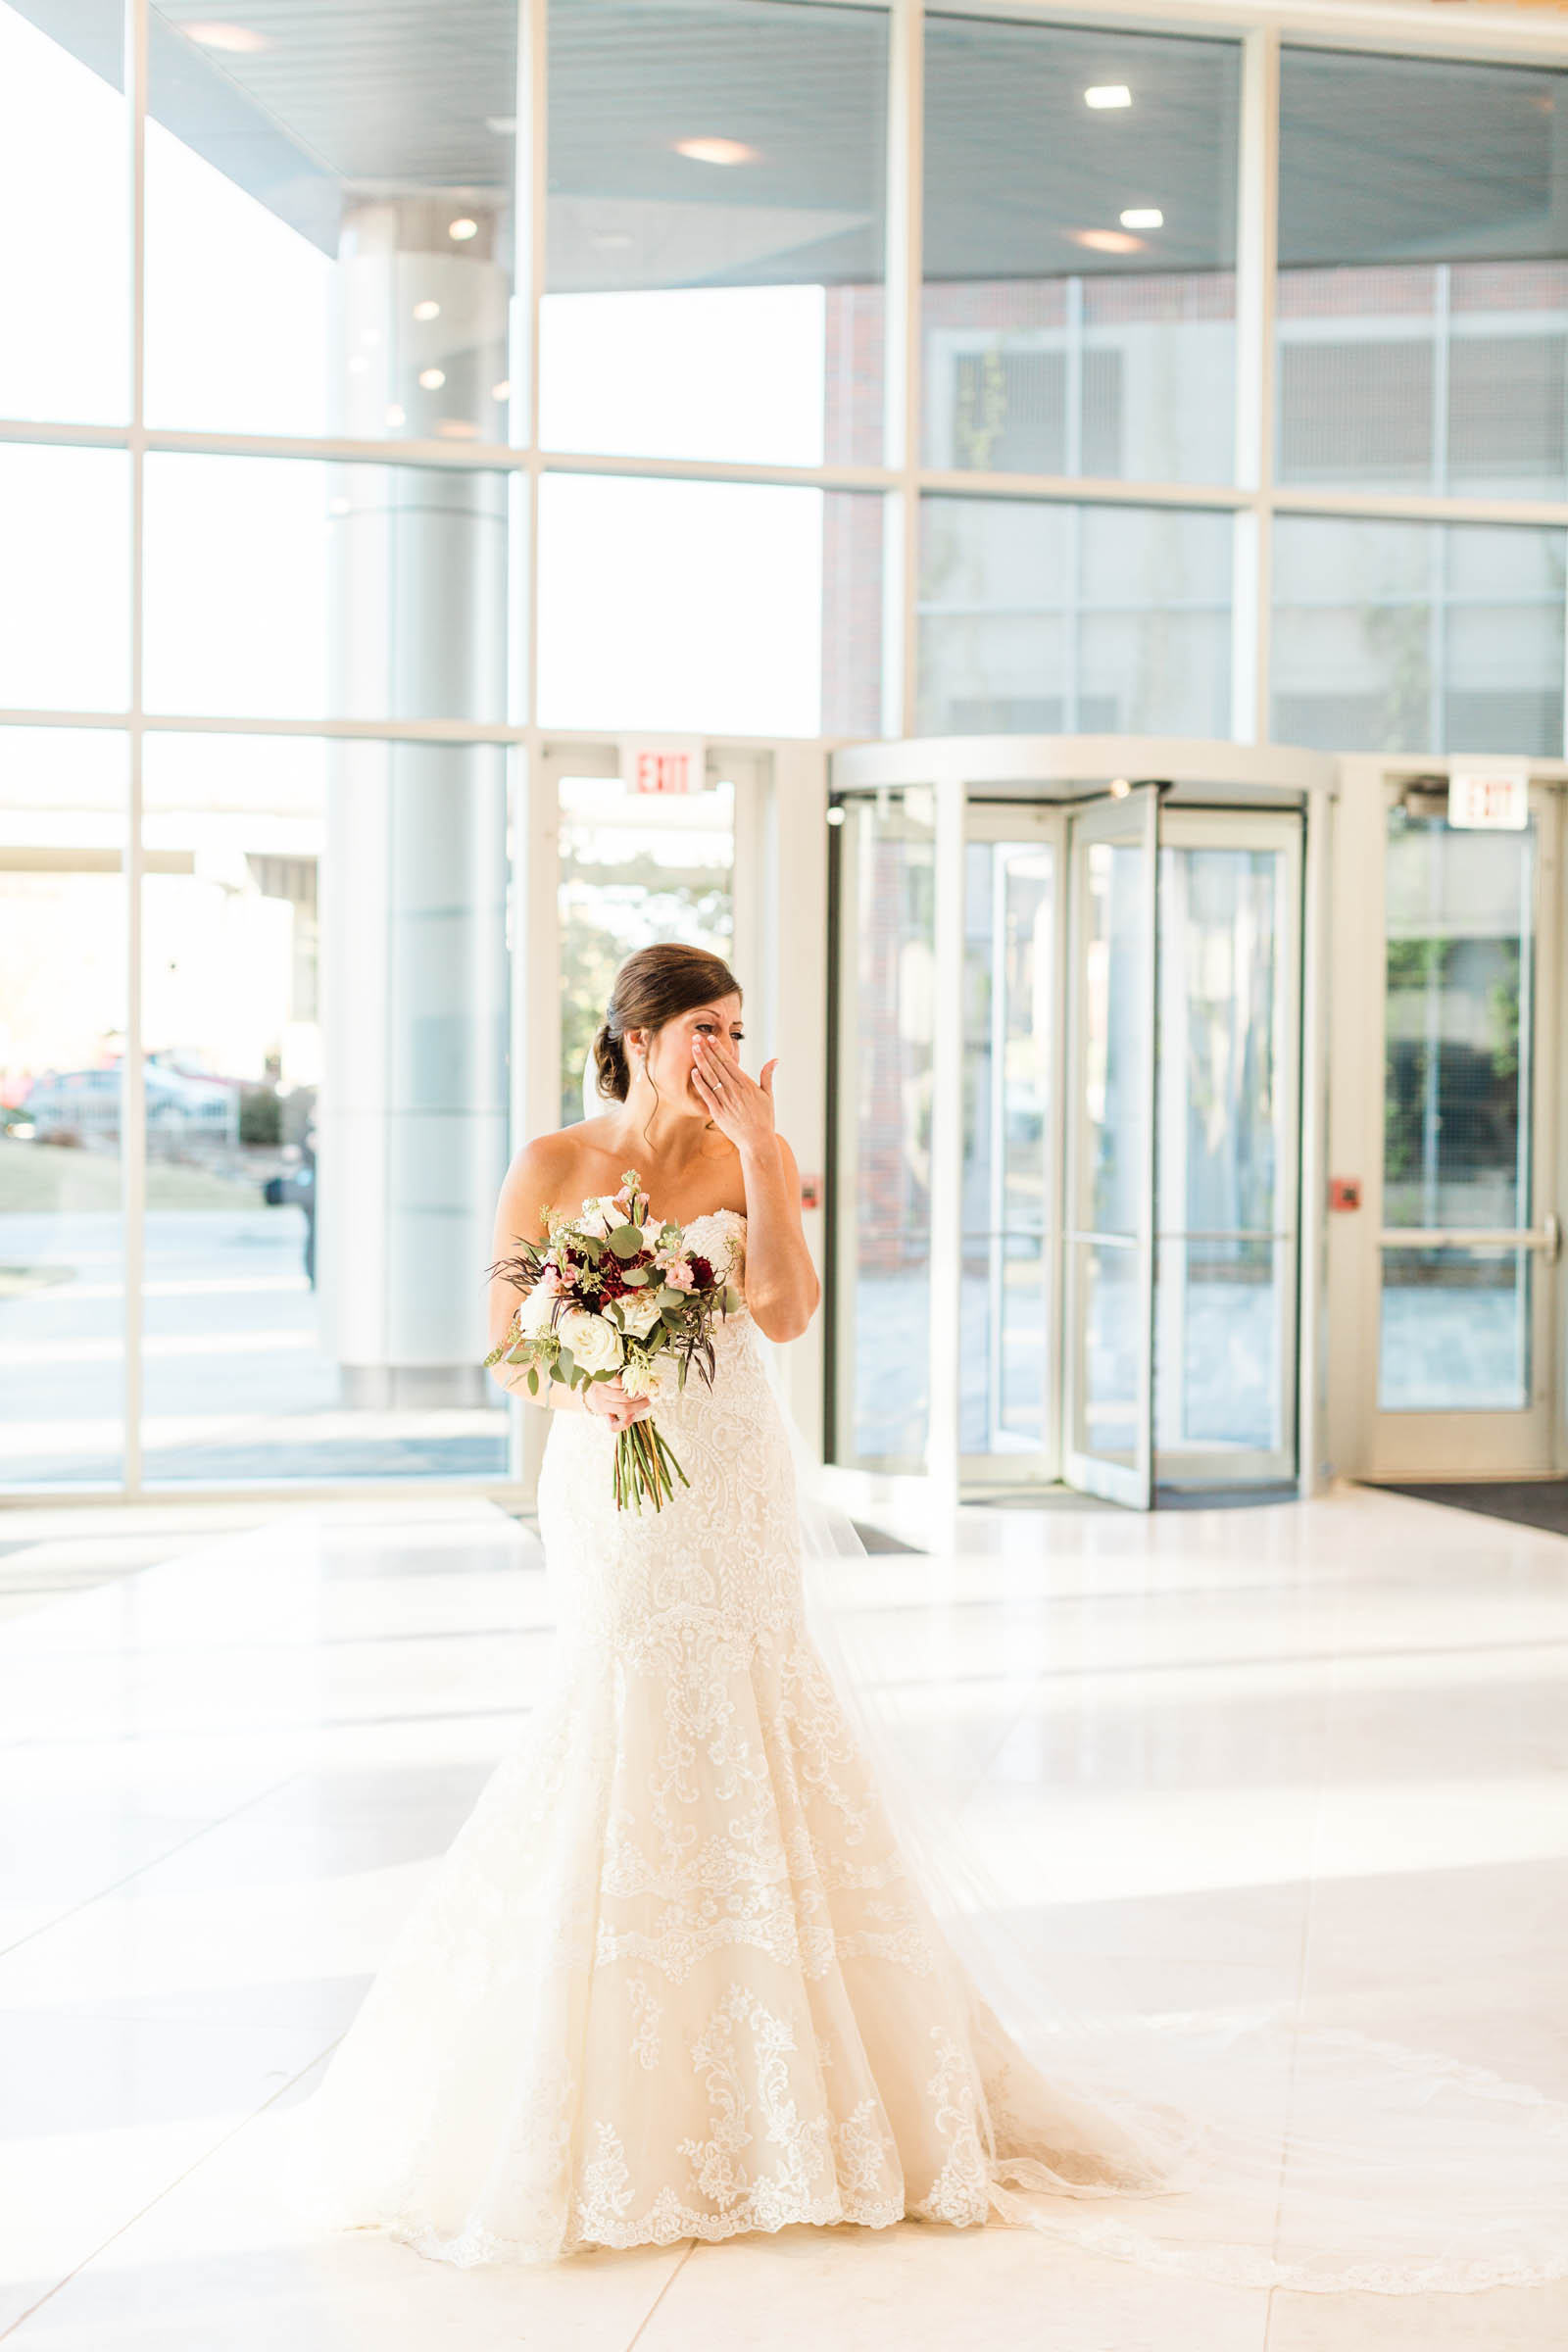 Wedding at Avenue in Greenville SC_Markie Walden Photo-43.jpg